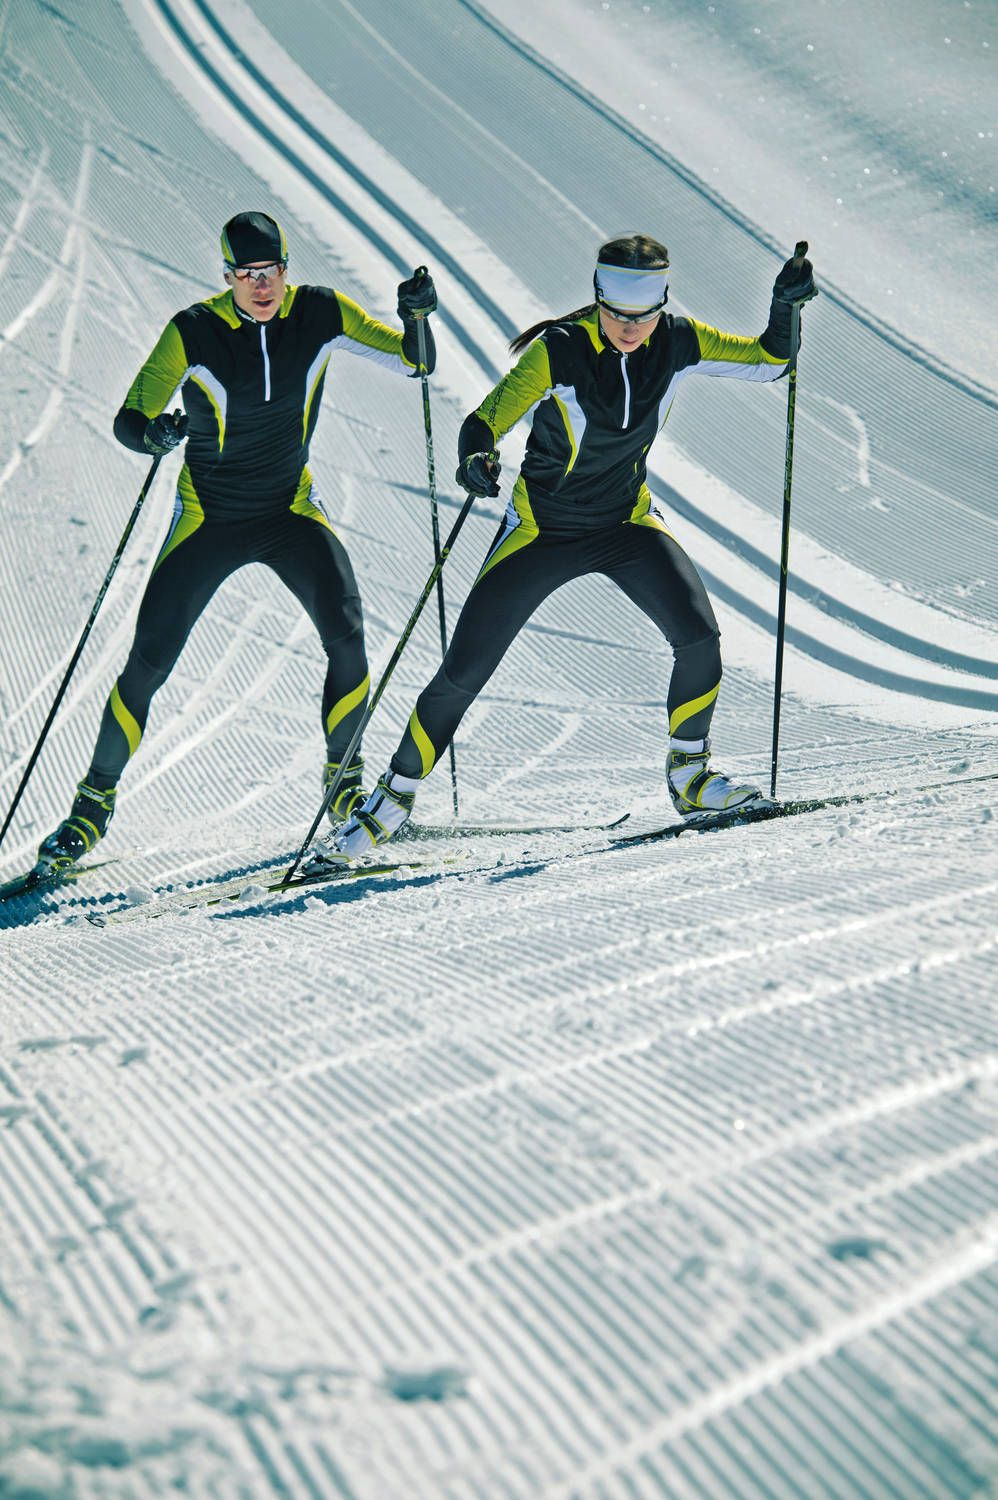 Fischer Sports Nordic Race Action 14 15 Nordic Skiing Cross Country Skiing Xc Ski